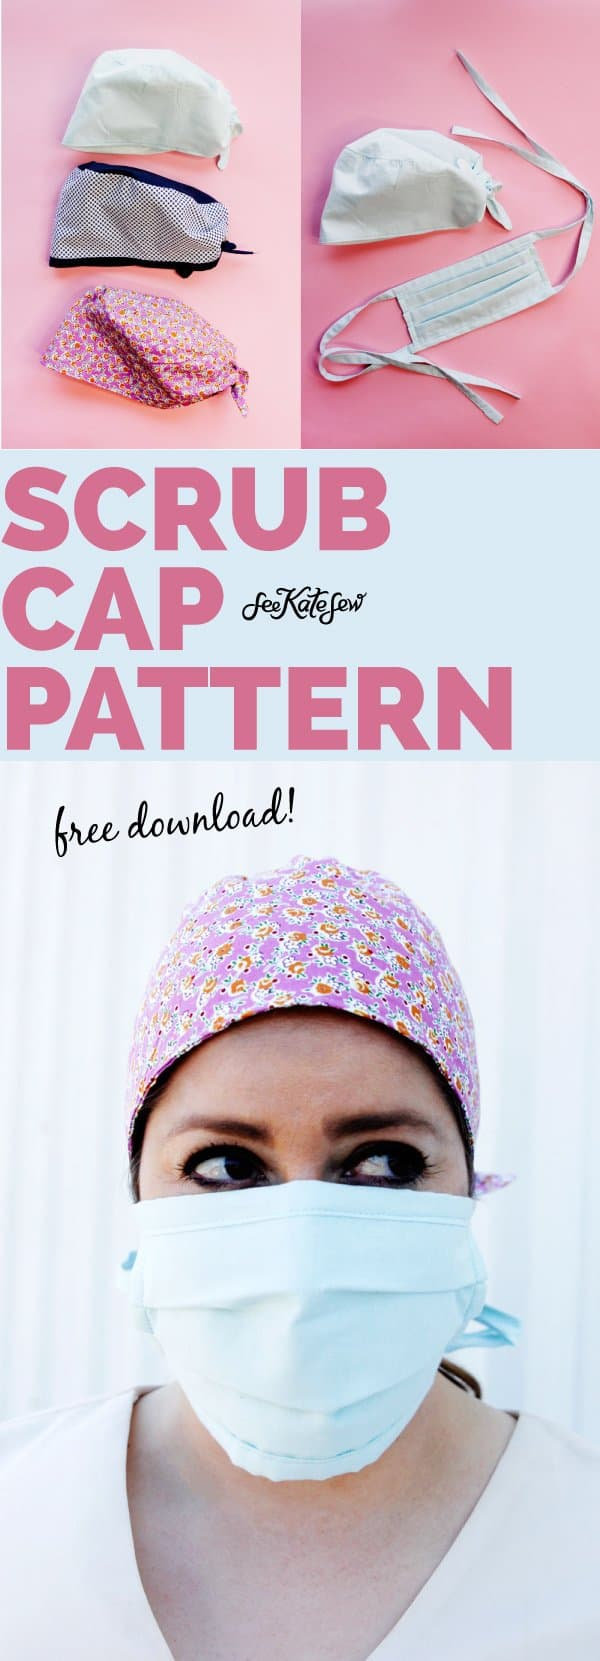 Surgical Cap Sewing Pattern FREE Download and Sew your Own Caps